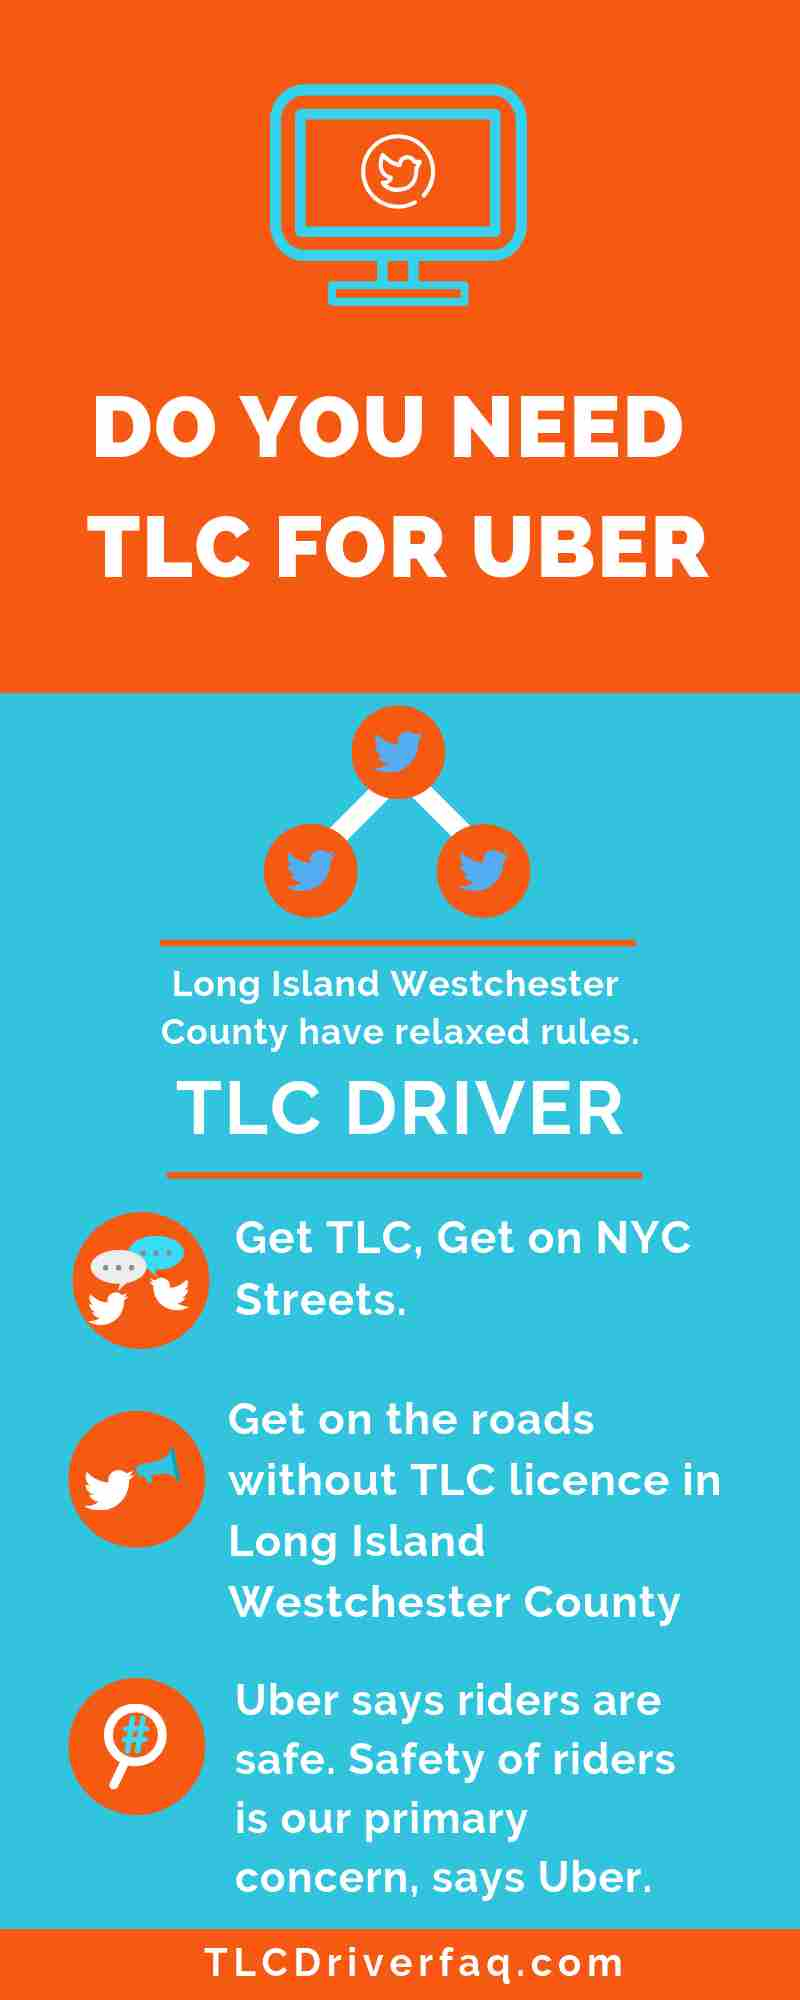 Do You Need Tlc For Uber - How to Get Your TLC License in NYC